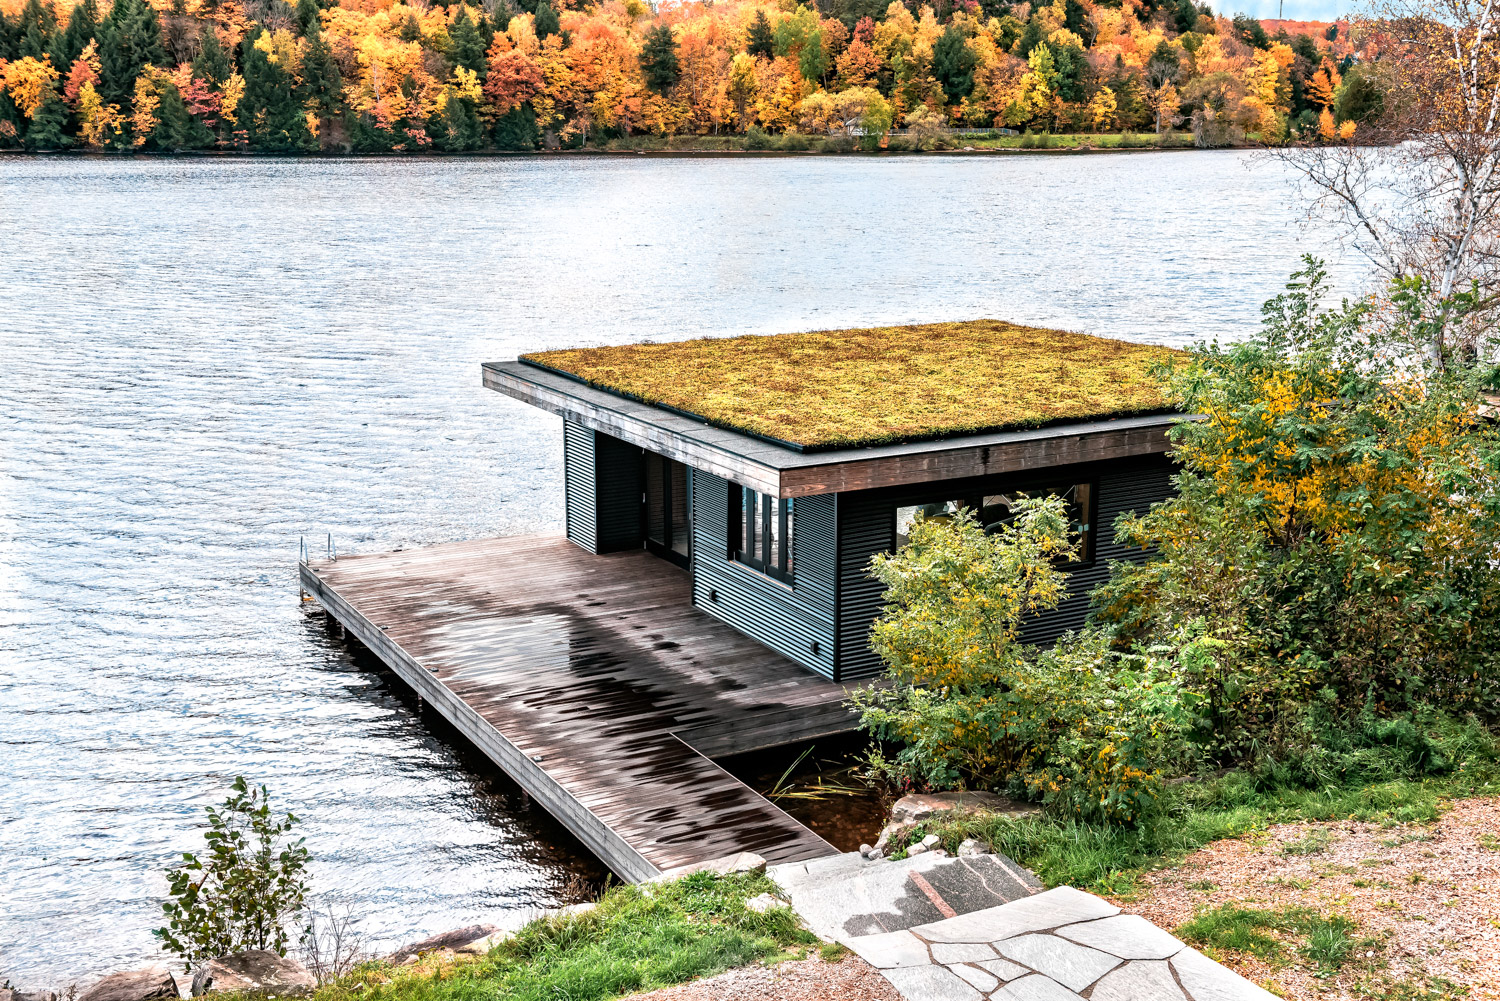 Muskoka boathouse with green roof corrugated steel siding and Kebony decking dock